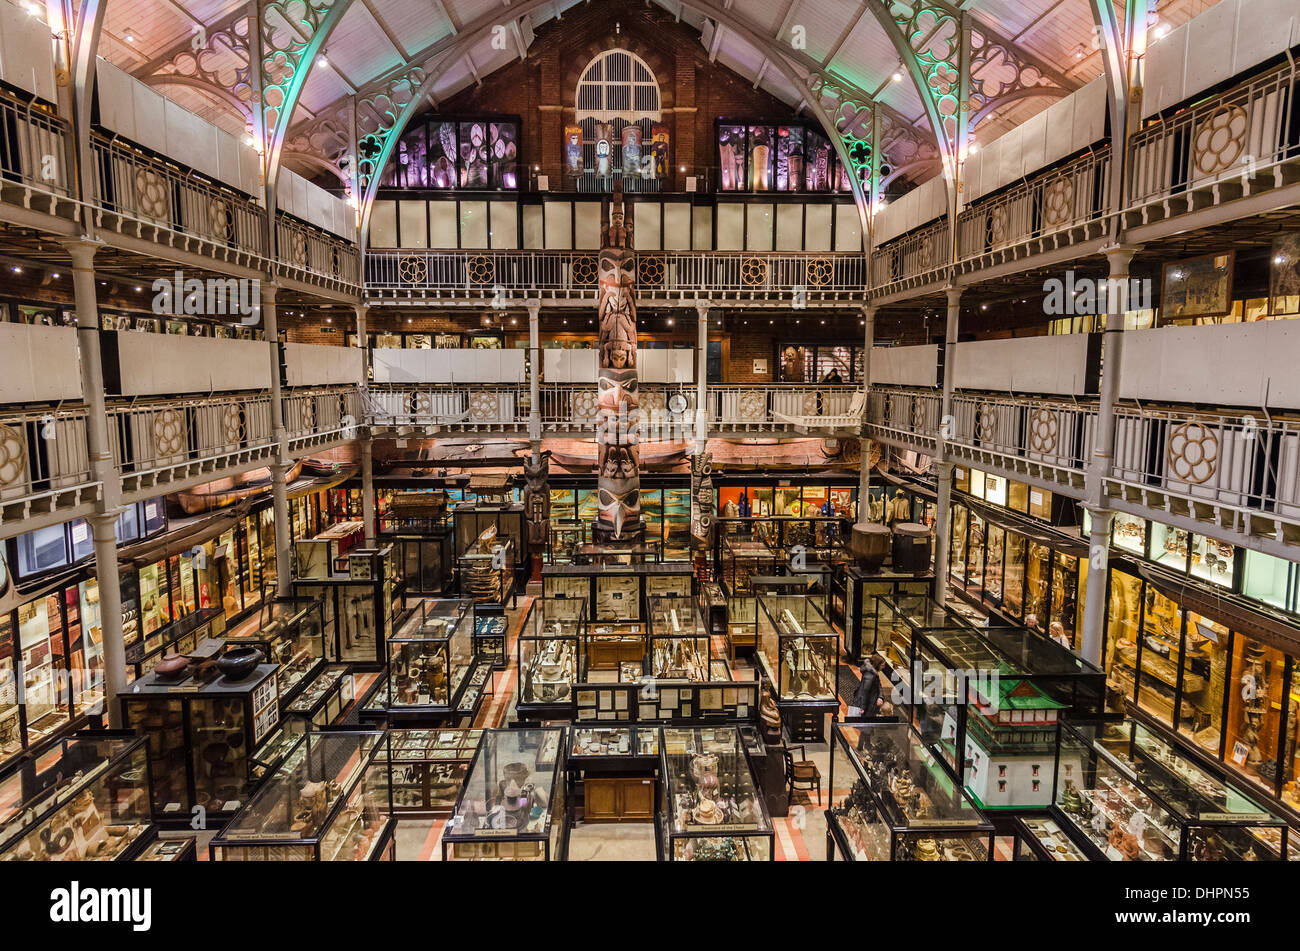 The Pitt Rivers museum Oxford - Stock Image